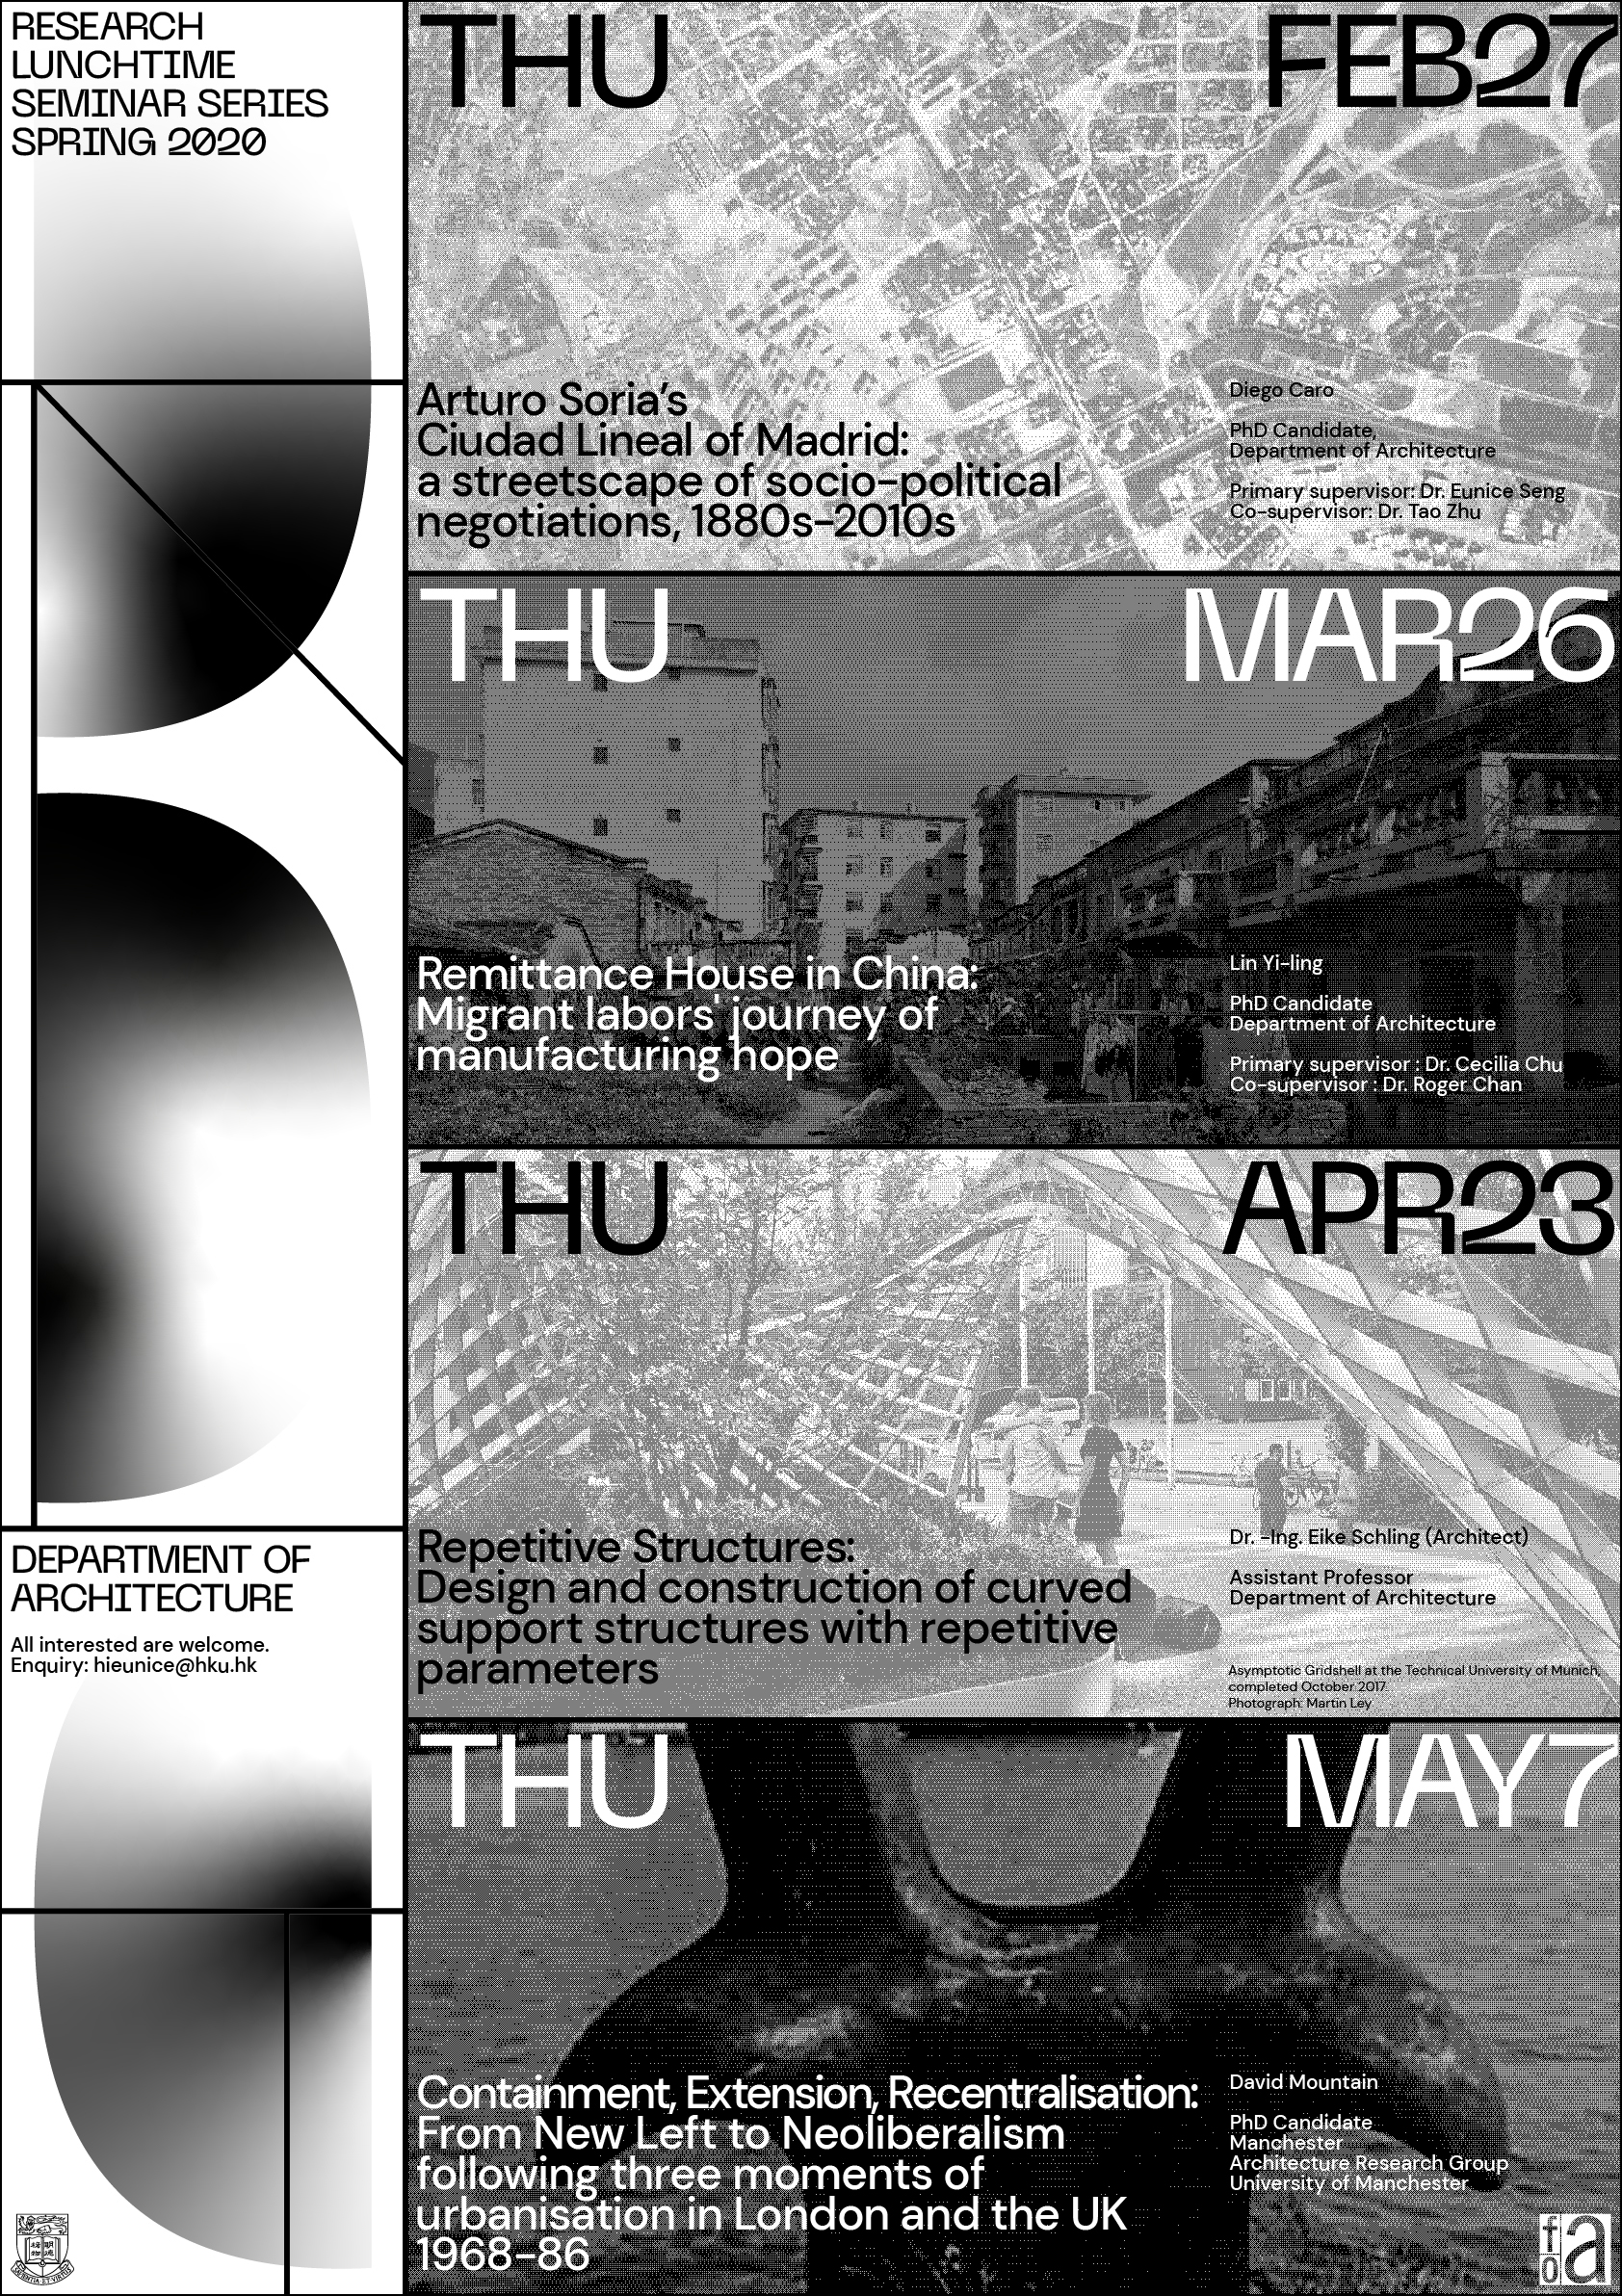 Research Lunchtime Seminar Series Spring 2020